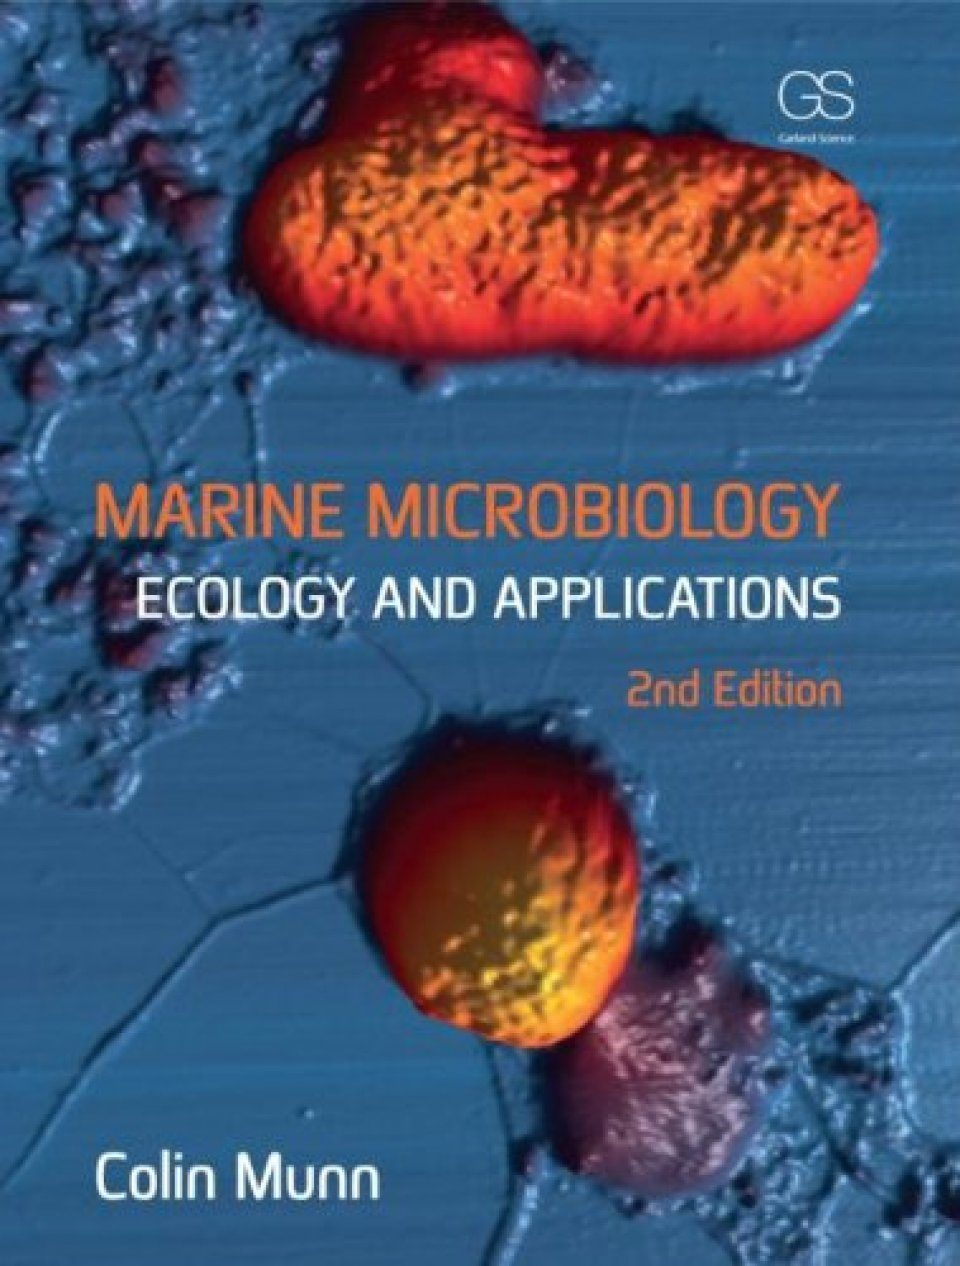 Marine Microbiology: Ecology and Applications